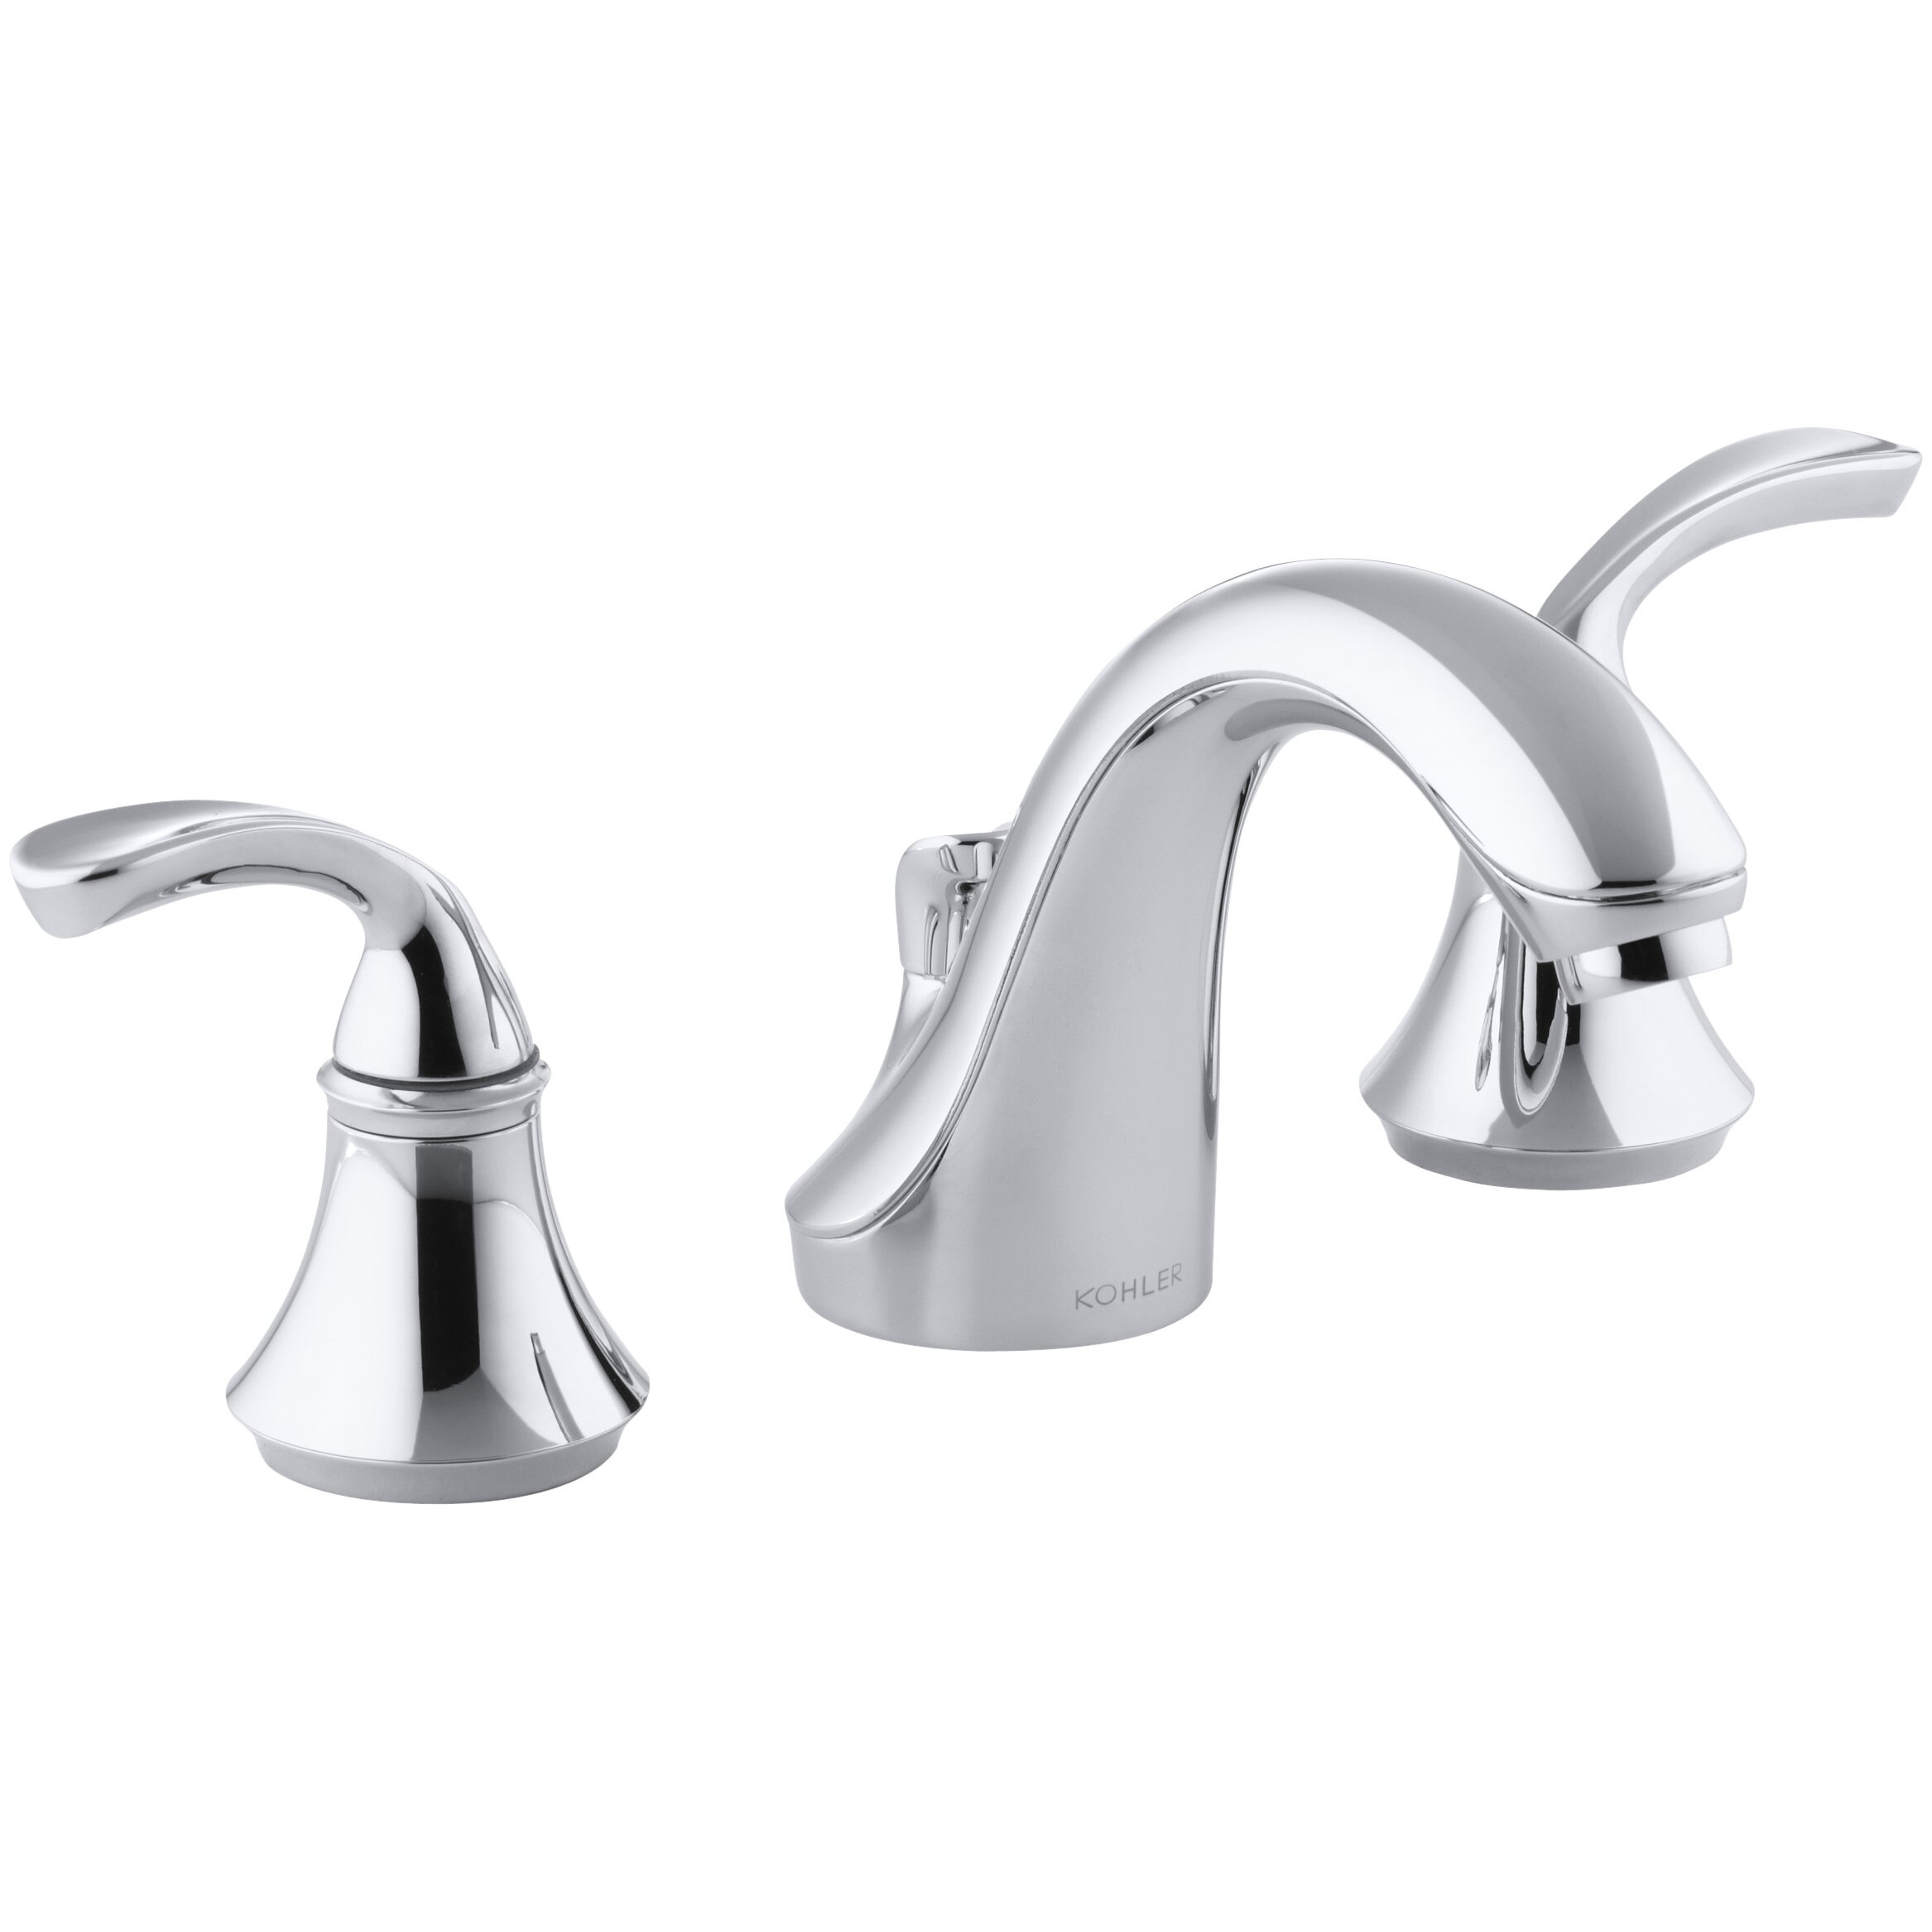 kohler commercial kitchen faucets kohler fort 233 widespread bathroom sink faucet 20240